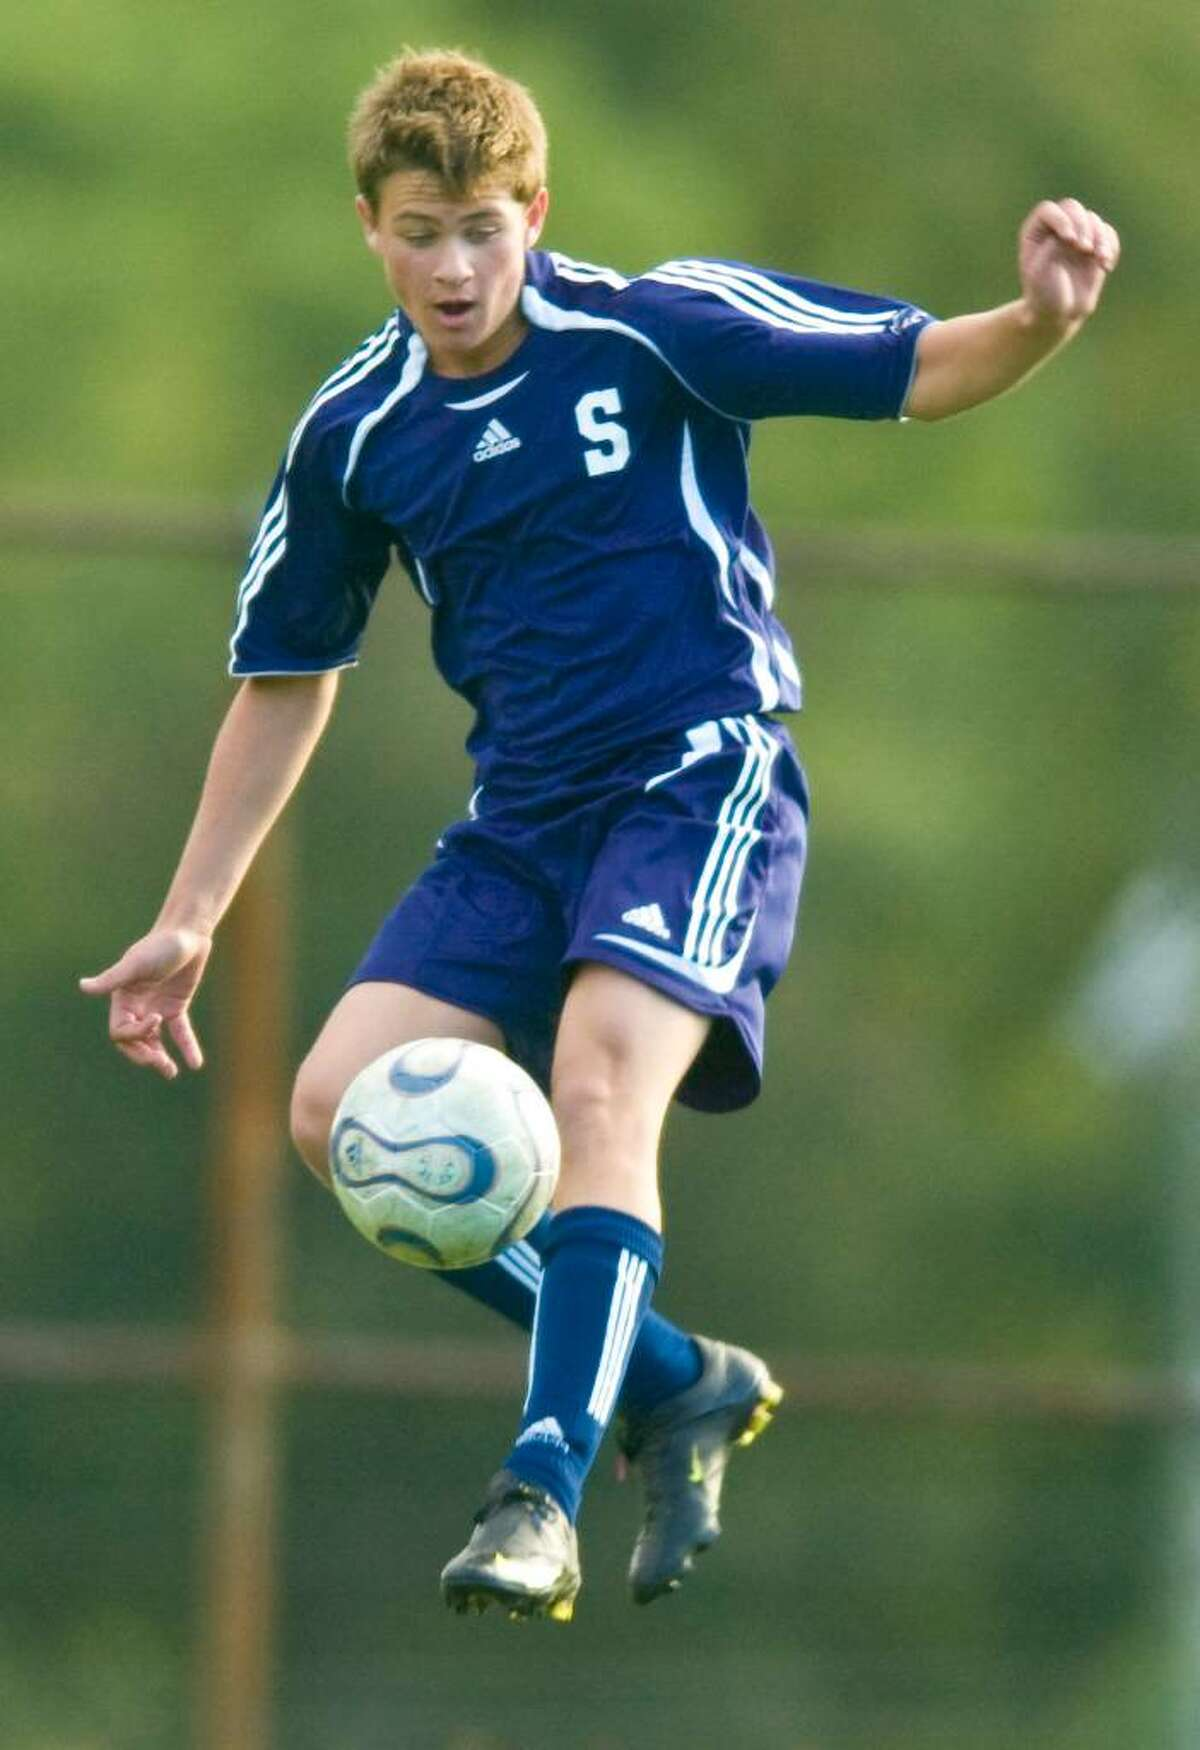 Staples' Greg Gudis during an FCIAC boys soccer match at Stamford High School in Stamford on Thursday, Oct. 1, 2009.